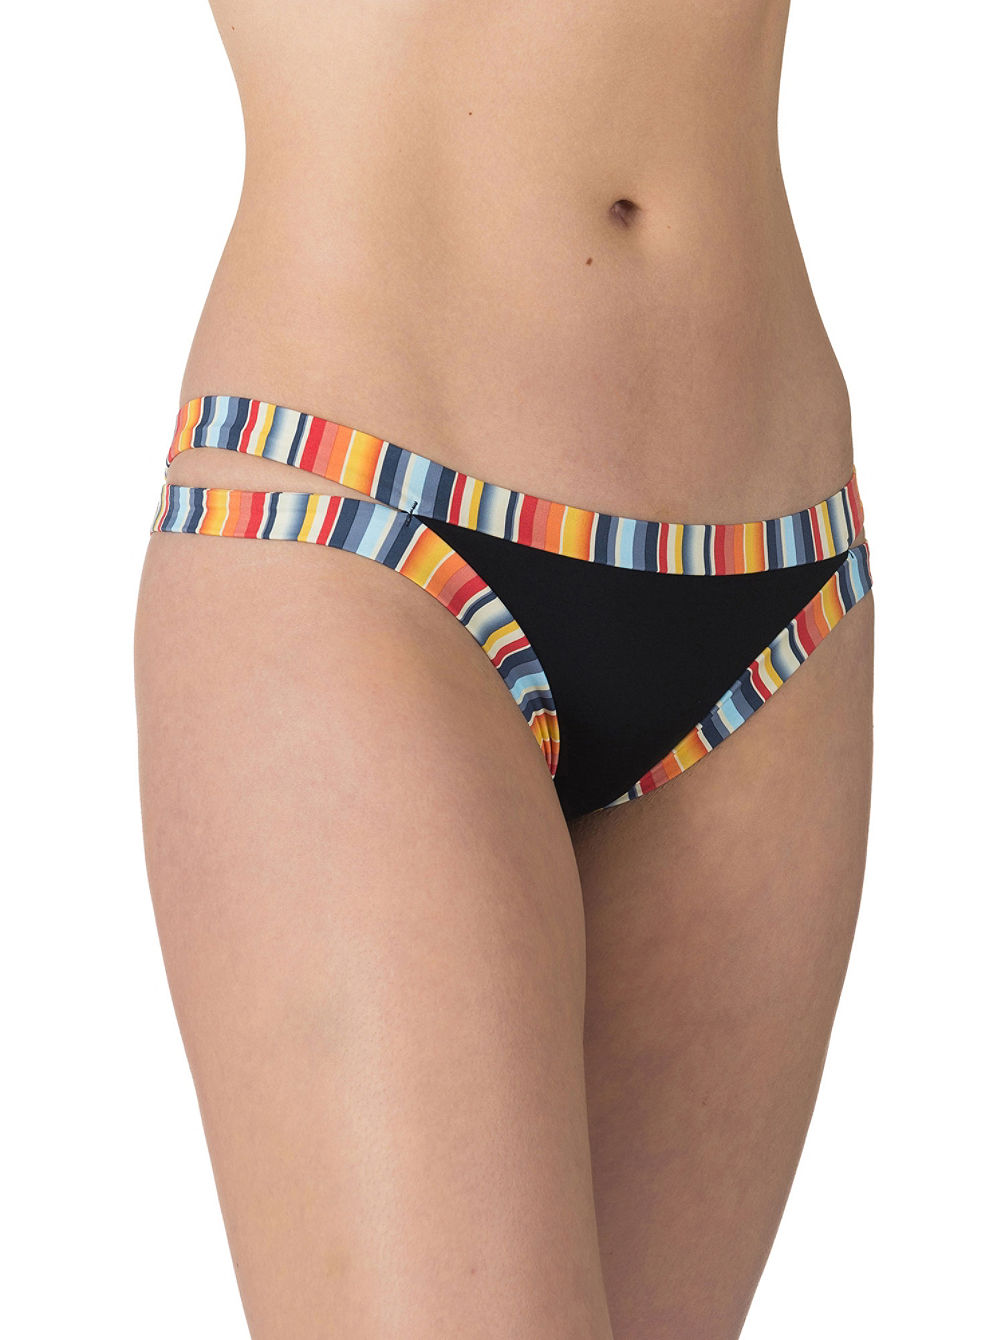 Vintage Stripes Cheeky Bikini Bottom